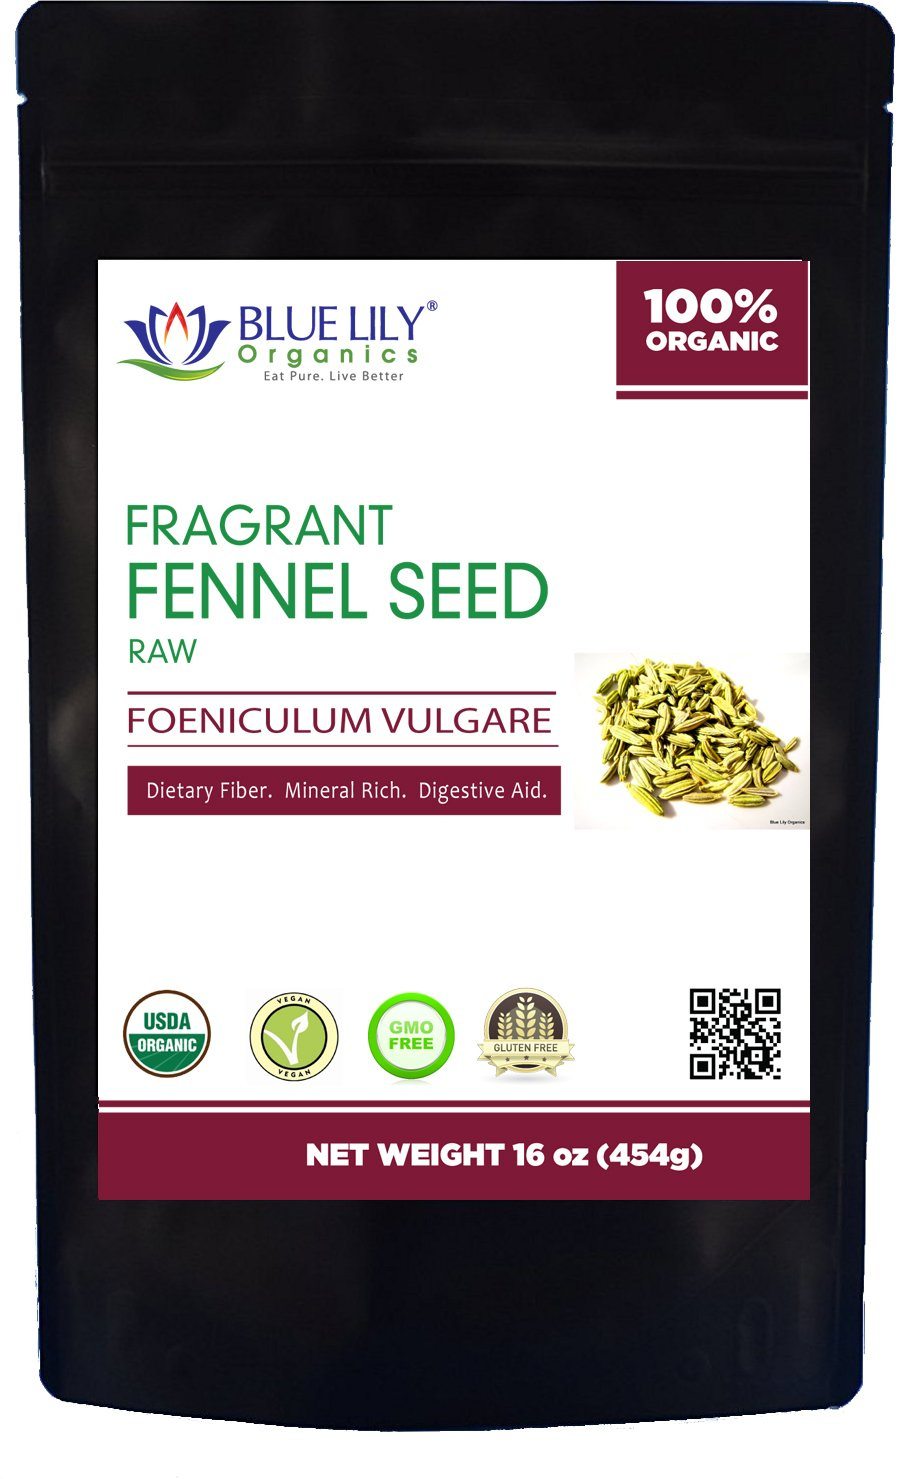 Blue Lily Organics Whole Fennel Seed - 1 Lb - Certified Organic - Non GMO, RAW, Supports Healthy Digestion, Bulk Tea Stand Up Pouch